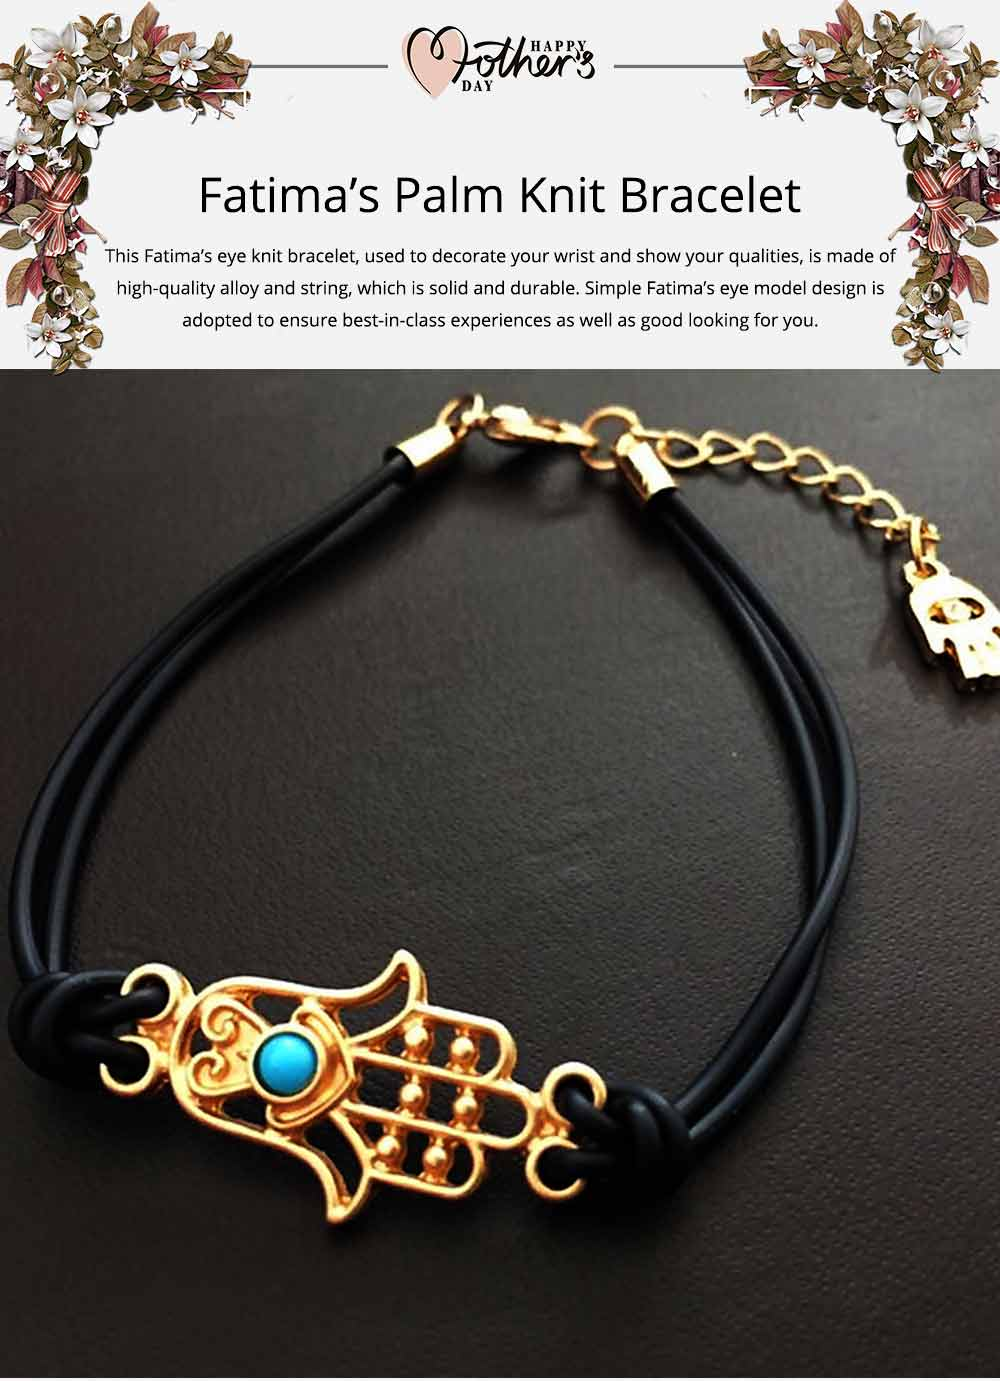 Simple Minimalist Stainless Knit Bracelet, Fatima's Palm Model Decoration Delicate Stylish Hand Chain Bangle Accessories for Men Ladies Women 0